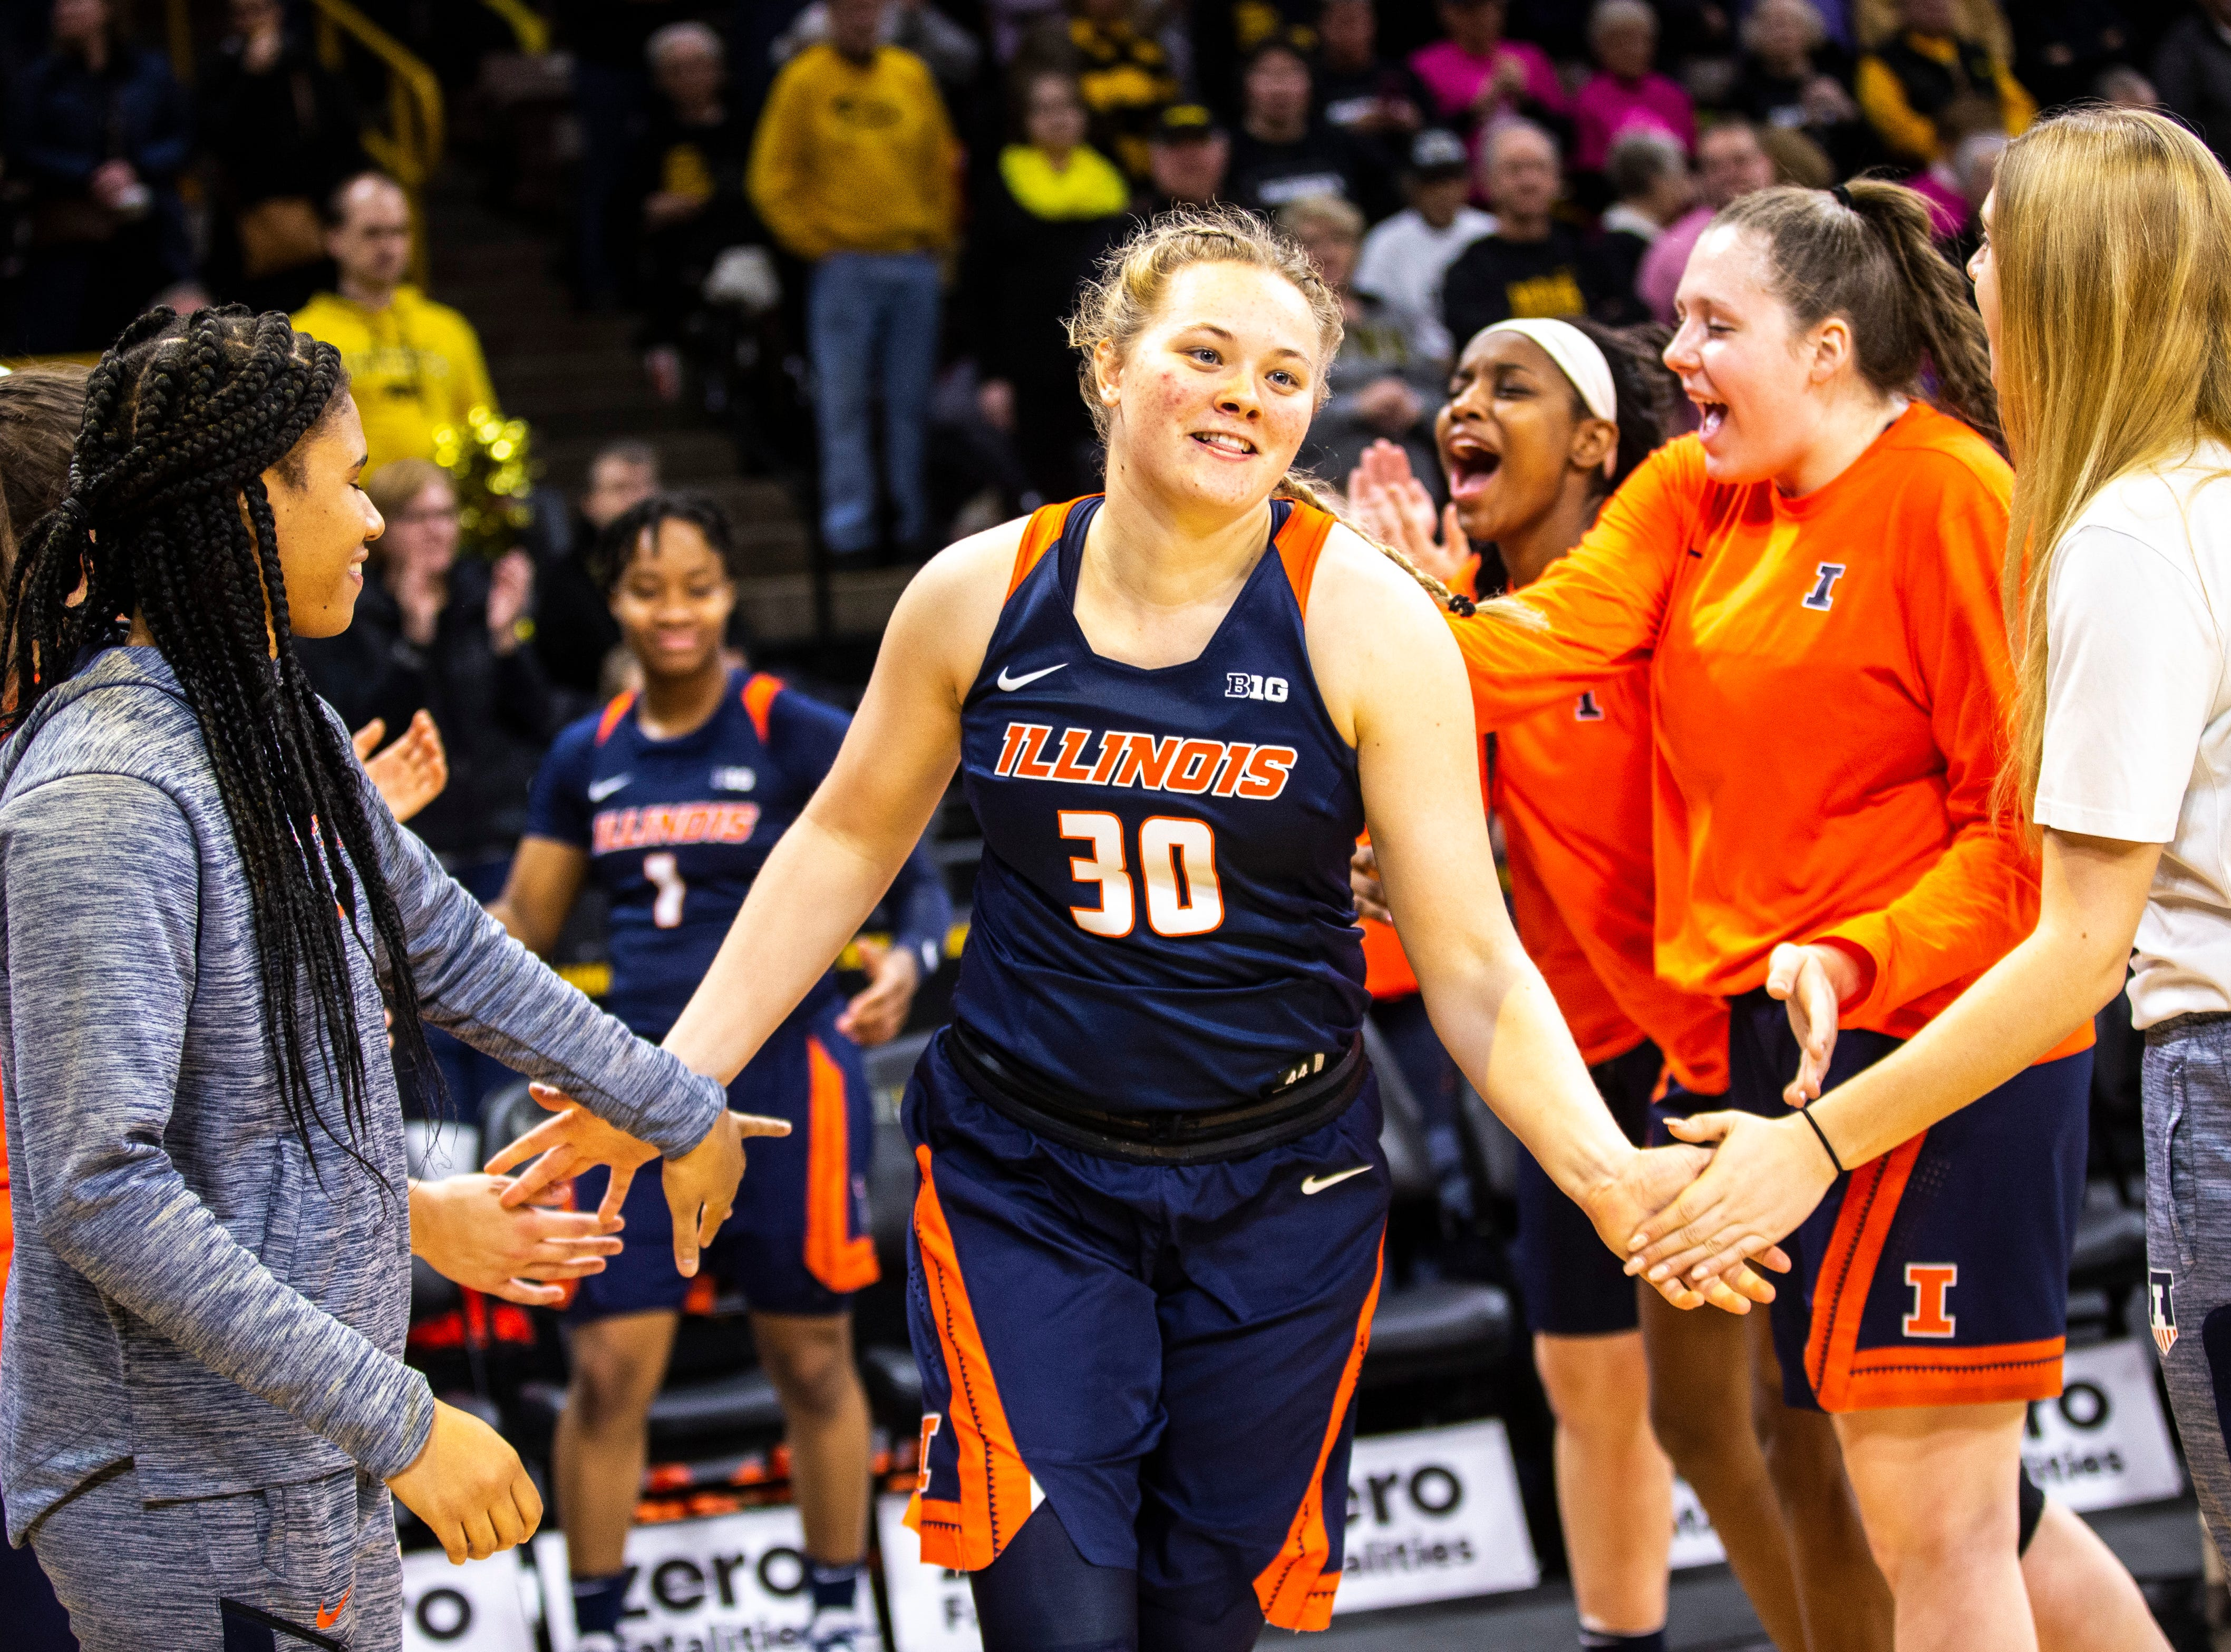 Illinois guard Courtney Joens is introduced during a NCAA Big Ten Conference women's basketball game on Thursday, Feb. 14, 2019 at Carver-Hawkeye Arena in Iowa City, Iowa.